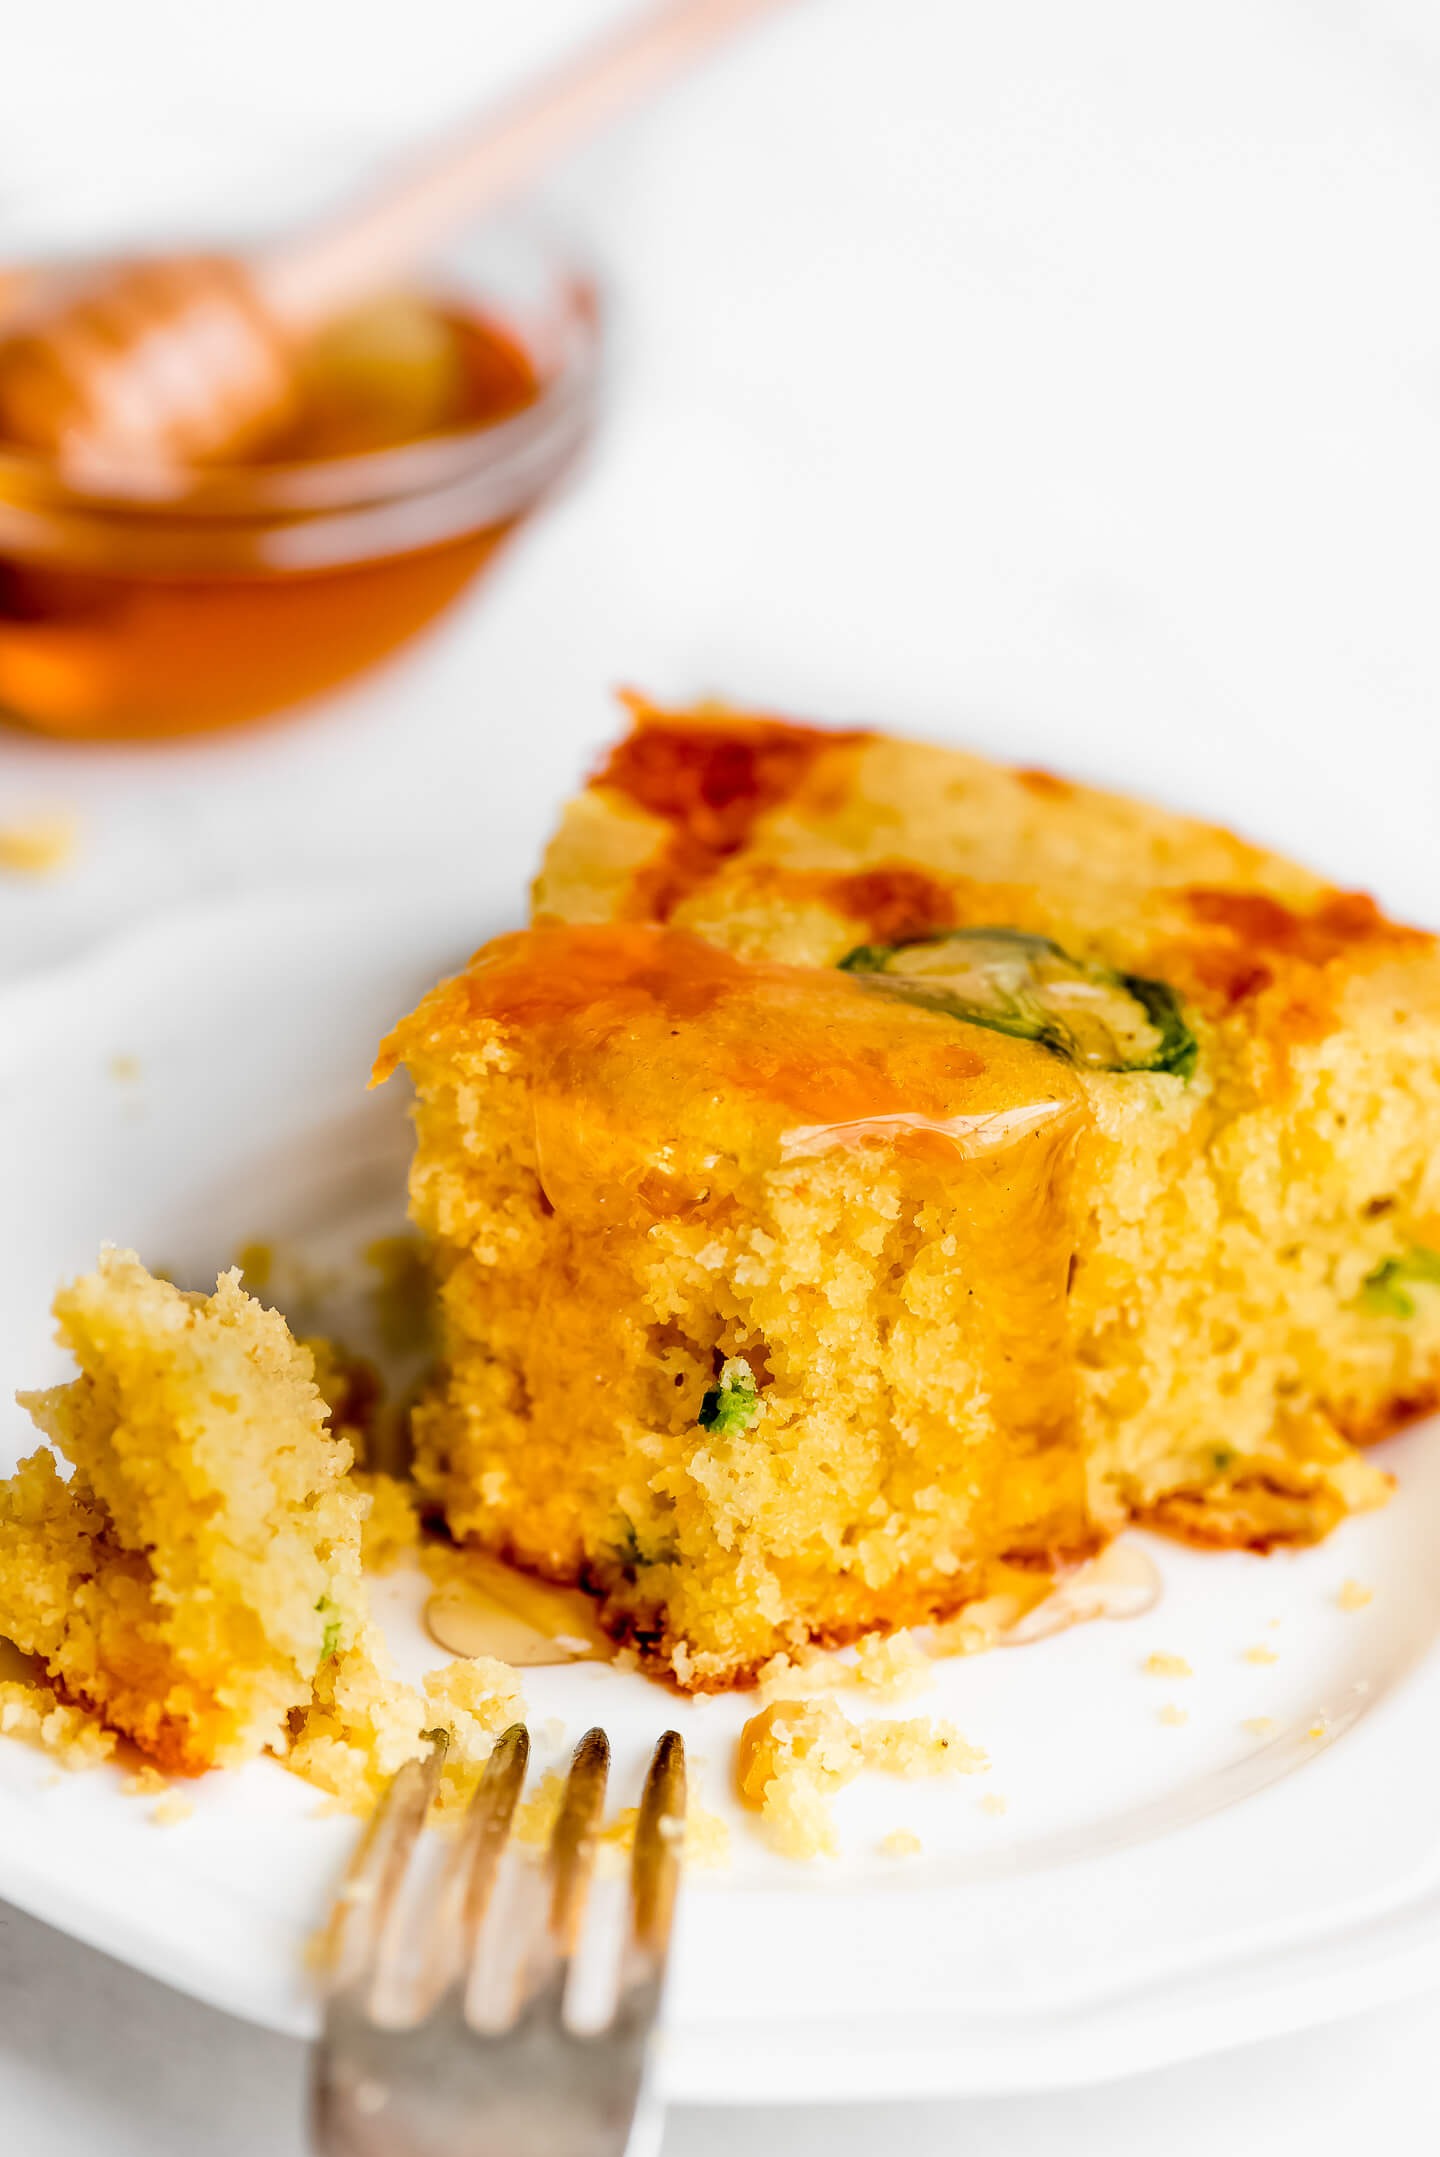 A close-up shot of a slice of Jalapeno Cheddar Cornbread drizzled with honey.